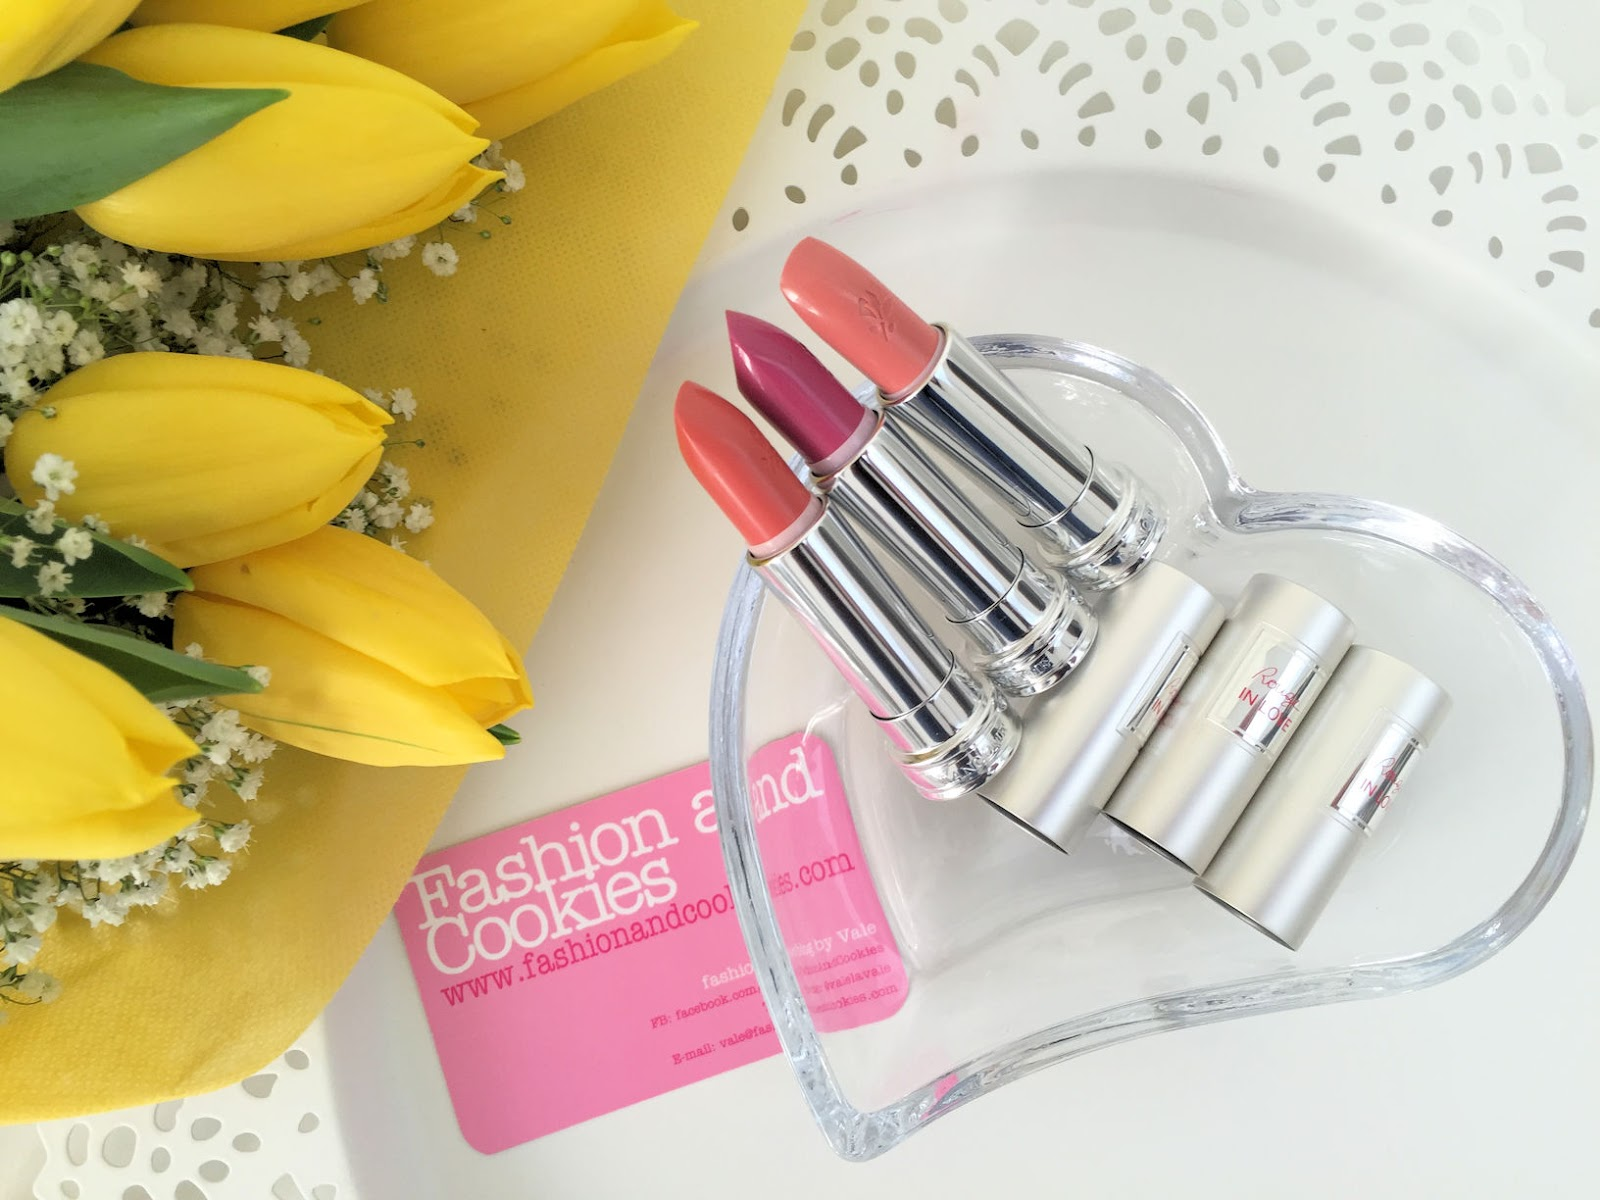 Lancôme makeup collection for Spring 2016 My Parisian Pastels lipstick in love on Fashion and Cookies beauty blog, beauty blogger